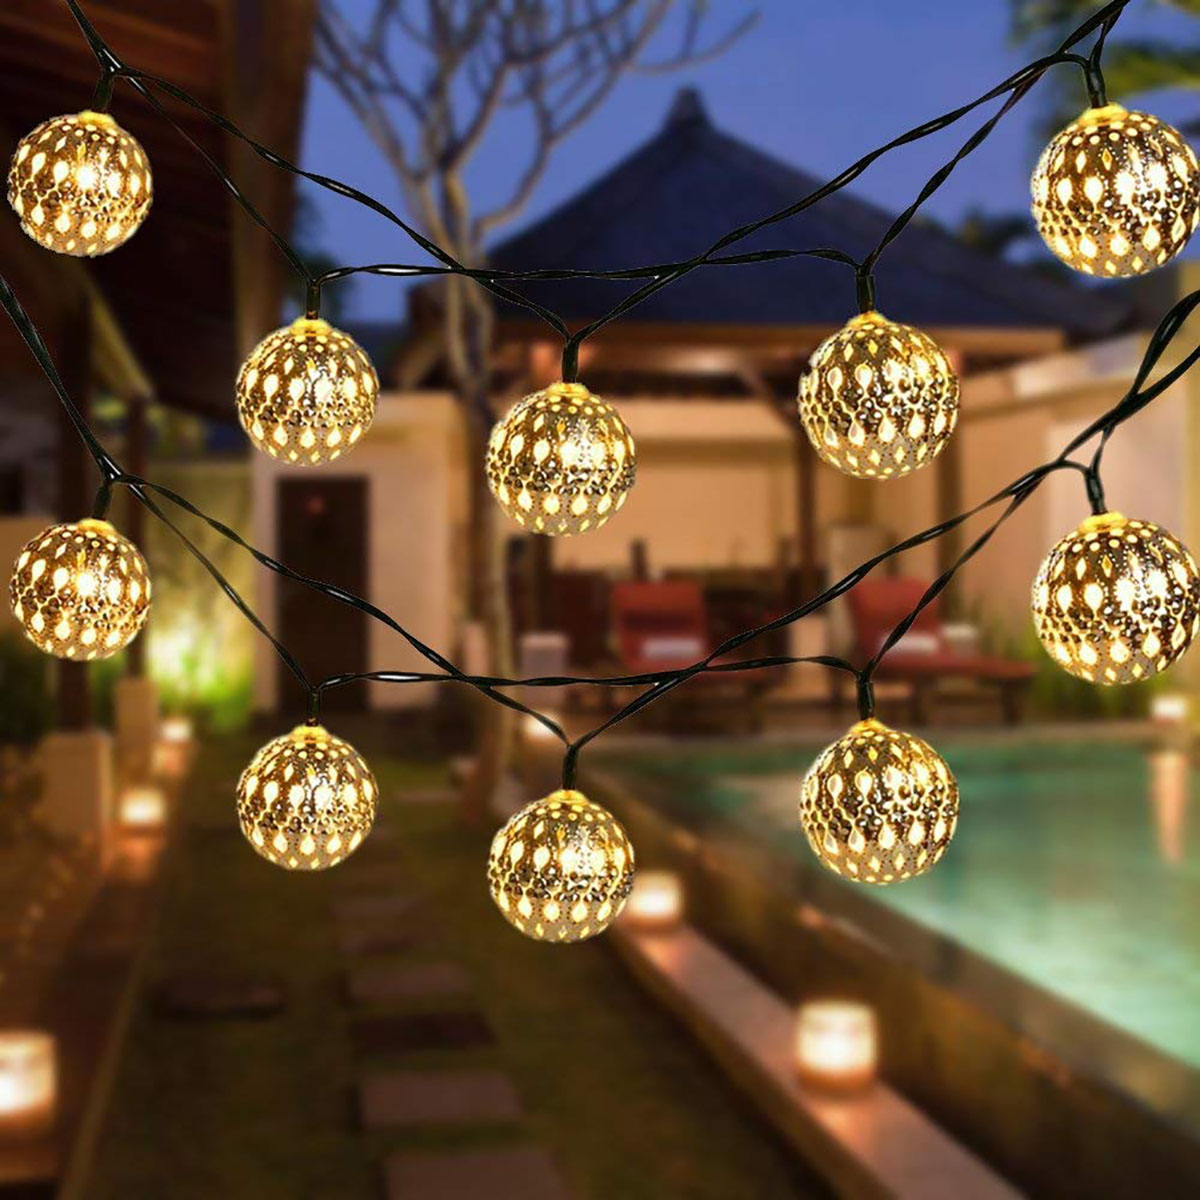 Image of: 20 30 50led Solar Lighting String Outdoor Garden Lights Moroccan Sliver Metal Ball Dream Fairy Lamp For Home Patio Decor Solar Lamps Aliexpress